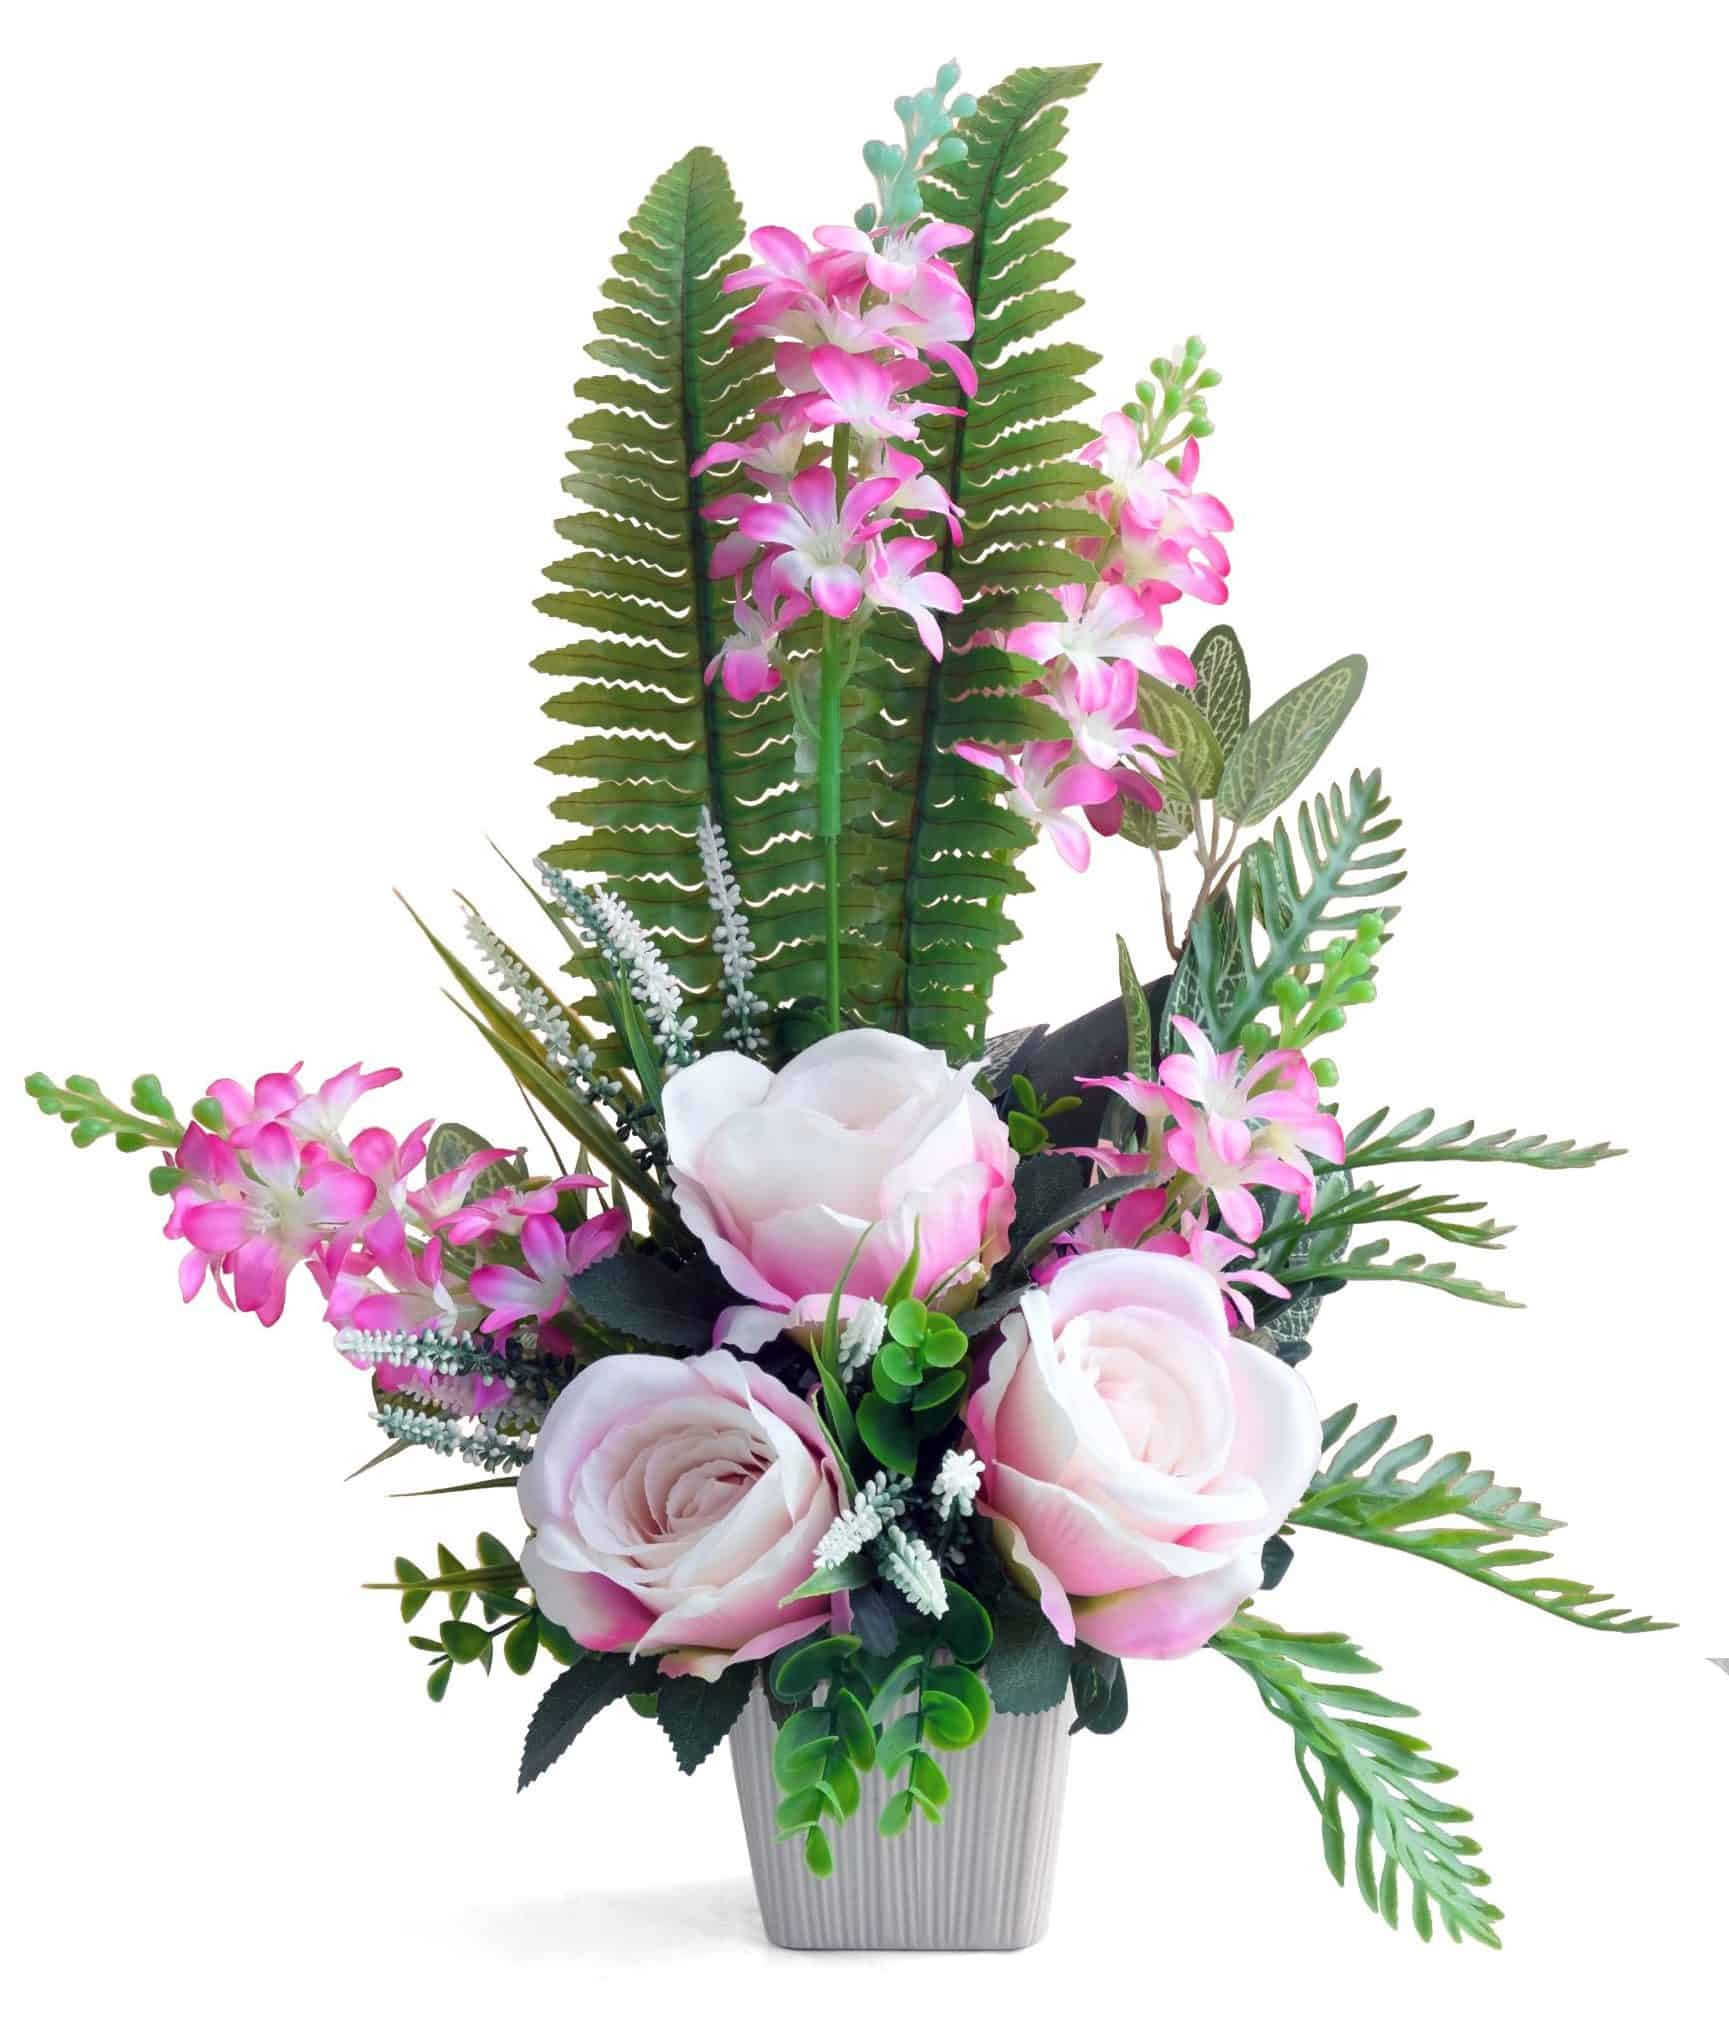 The 10 Fundamentals Of Flower Arranging Cascade Floral Wholesale